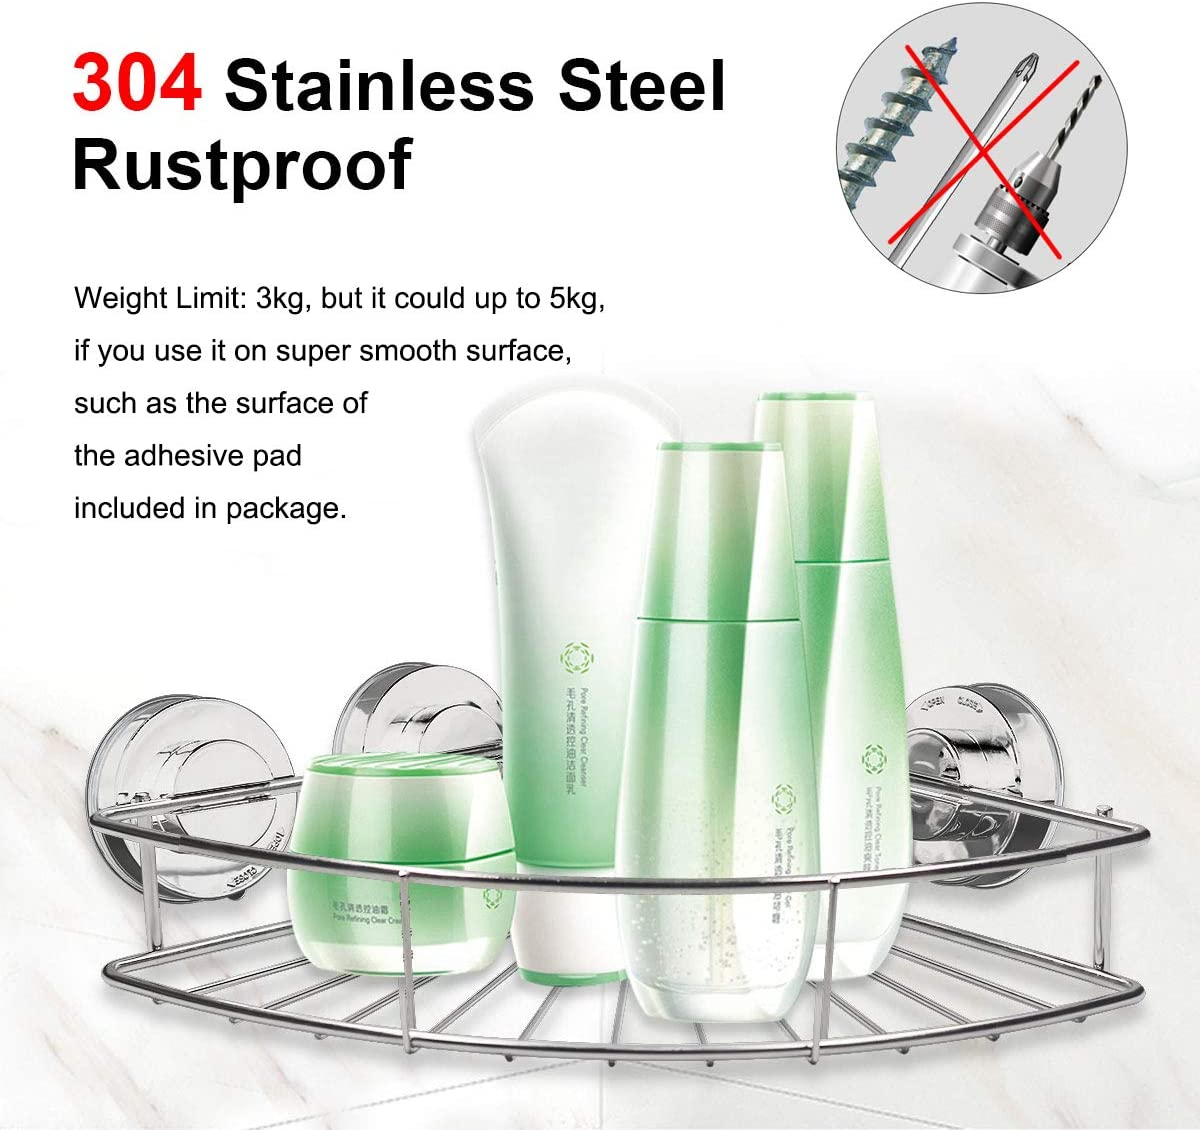 Wall Mounted Corner Shelf Shower Caddy Basket Bathroom Triple Storage Holder Adhesive Suction Cup Deep Triangle Space Organizer Rack for Kitchen Toilet 304 Stainless Steel Rustproof No Drilling